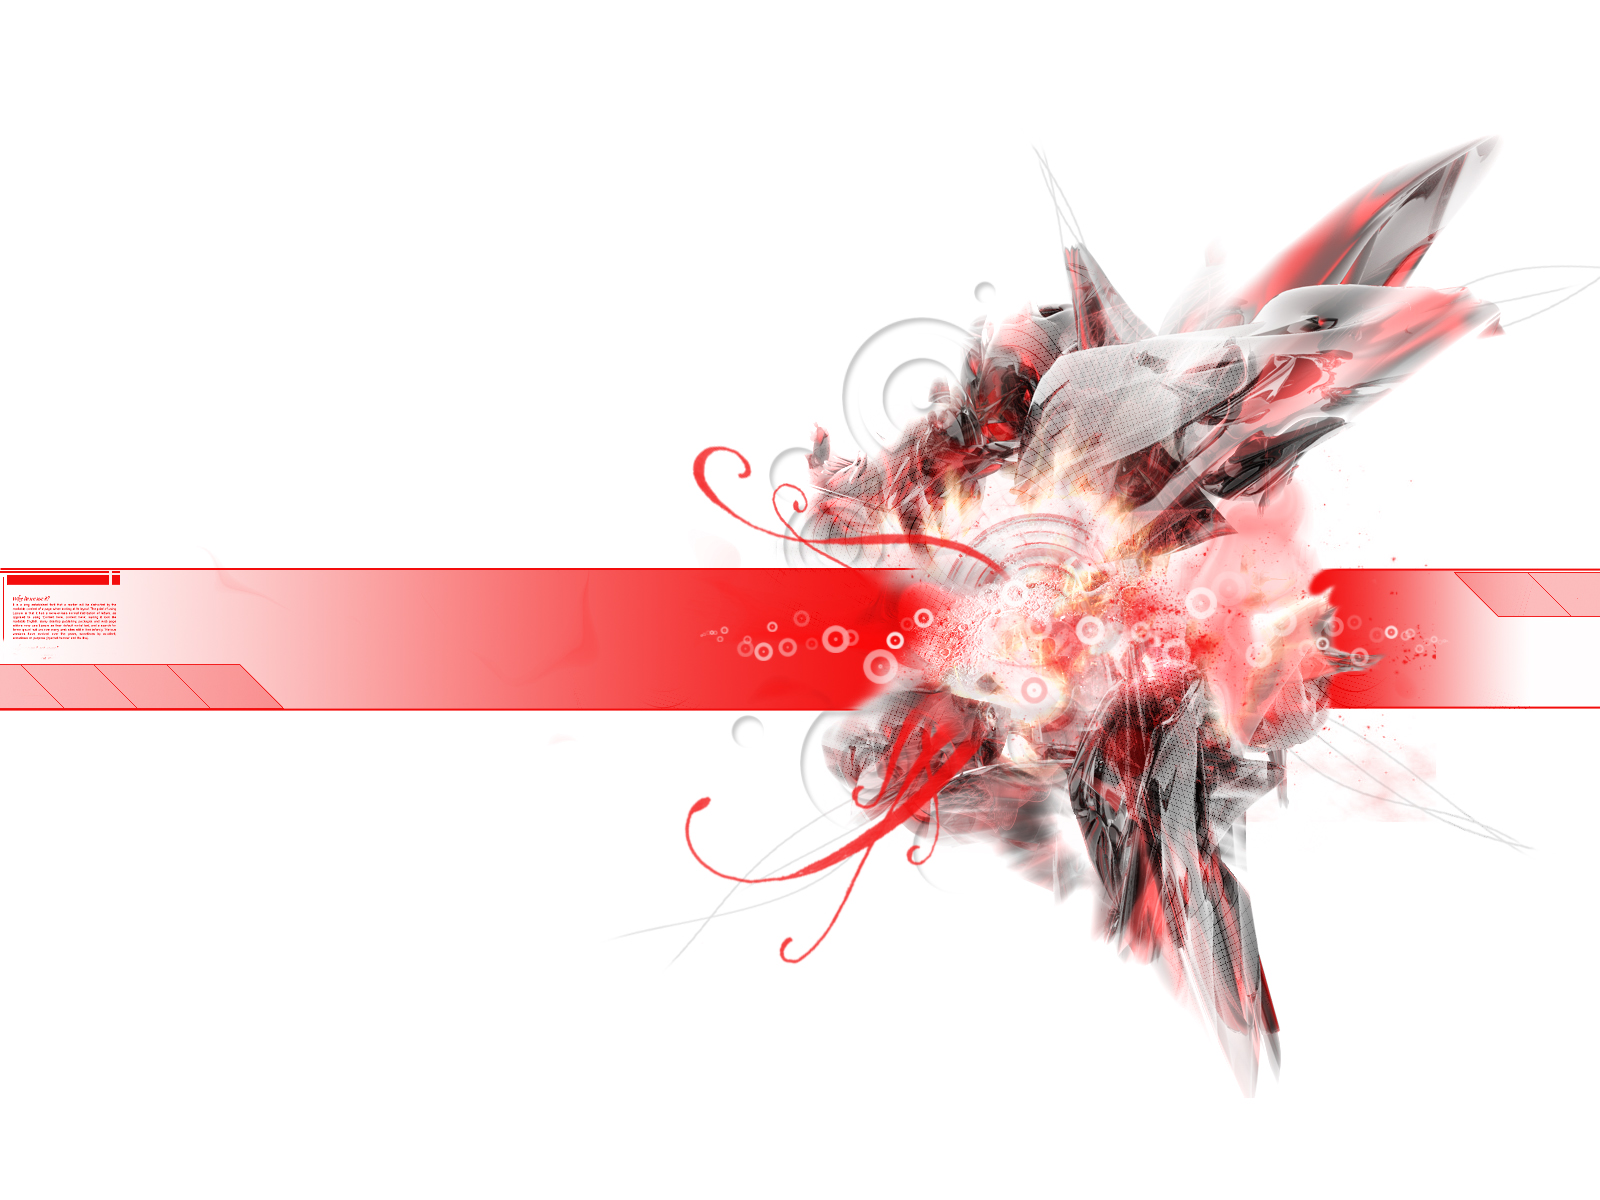 Red Black White Abstract Wallpaper - WallpaperSafari